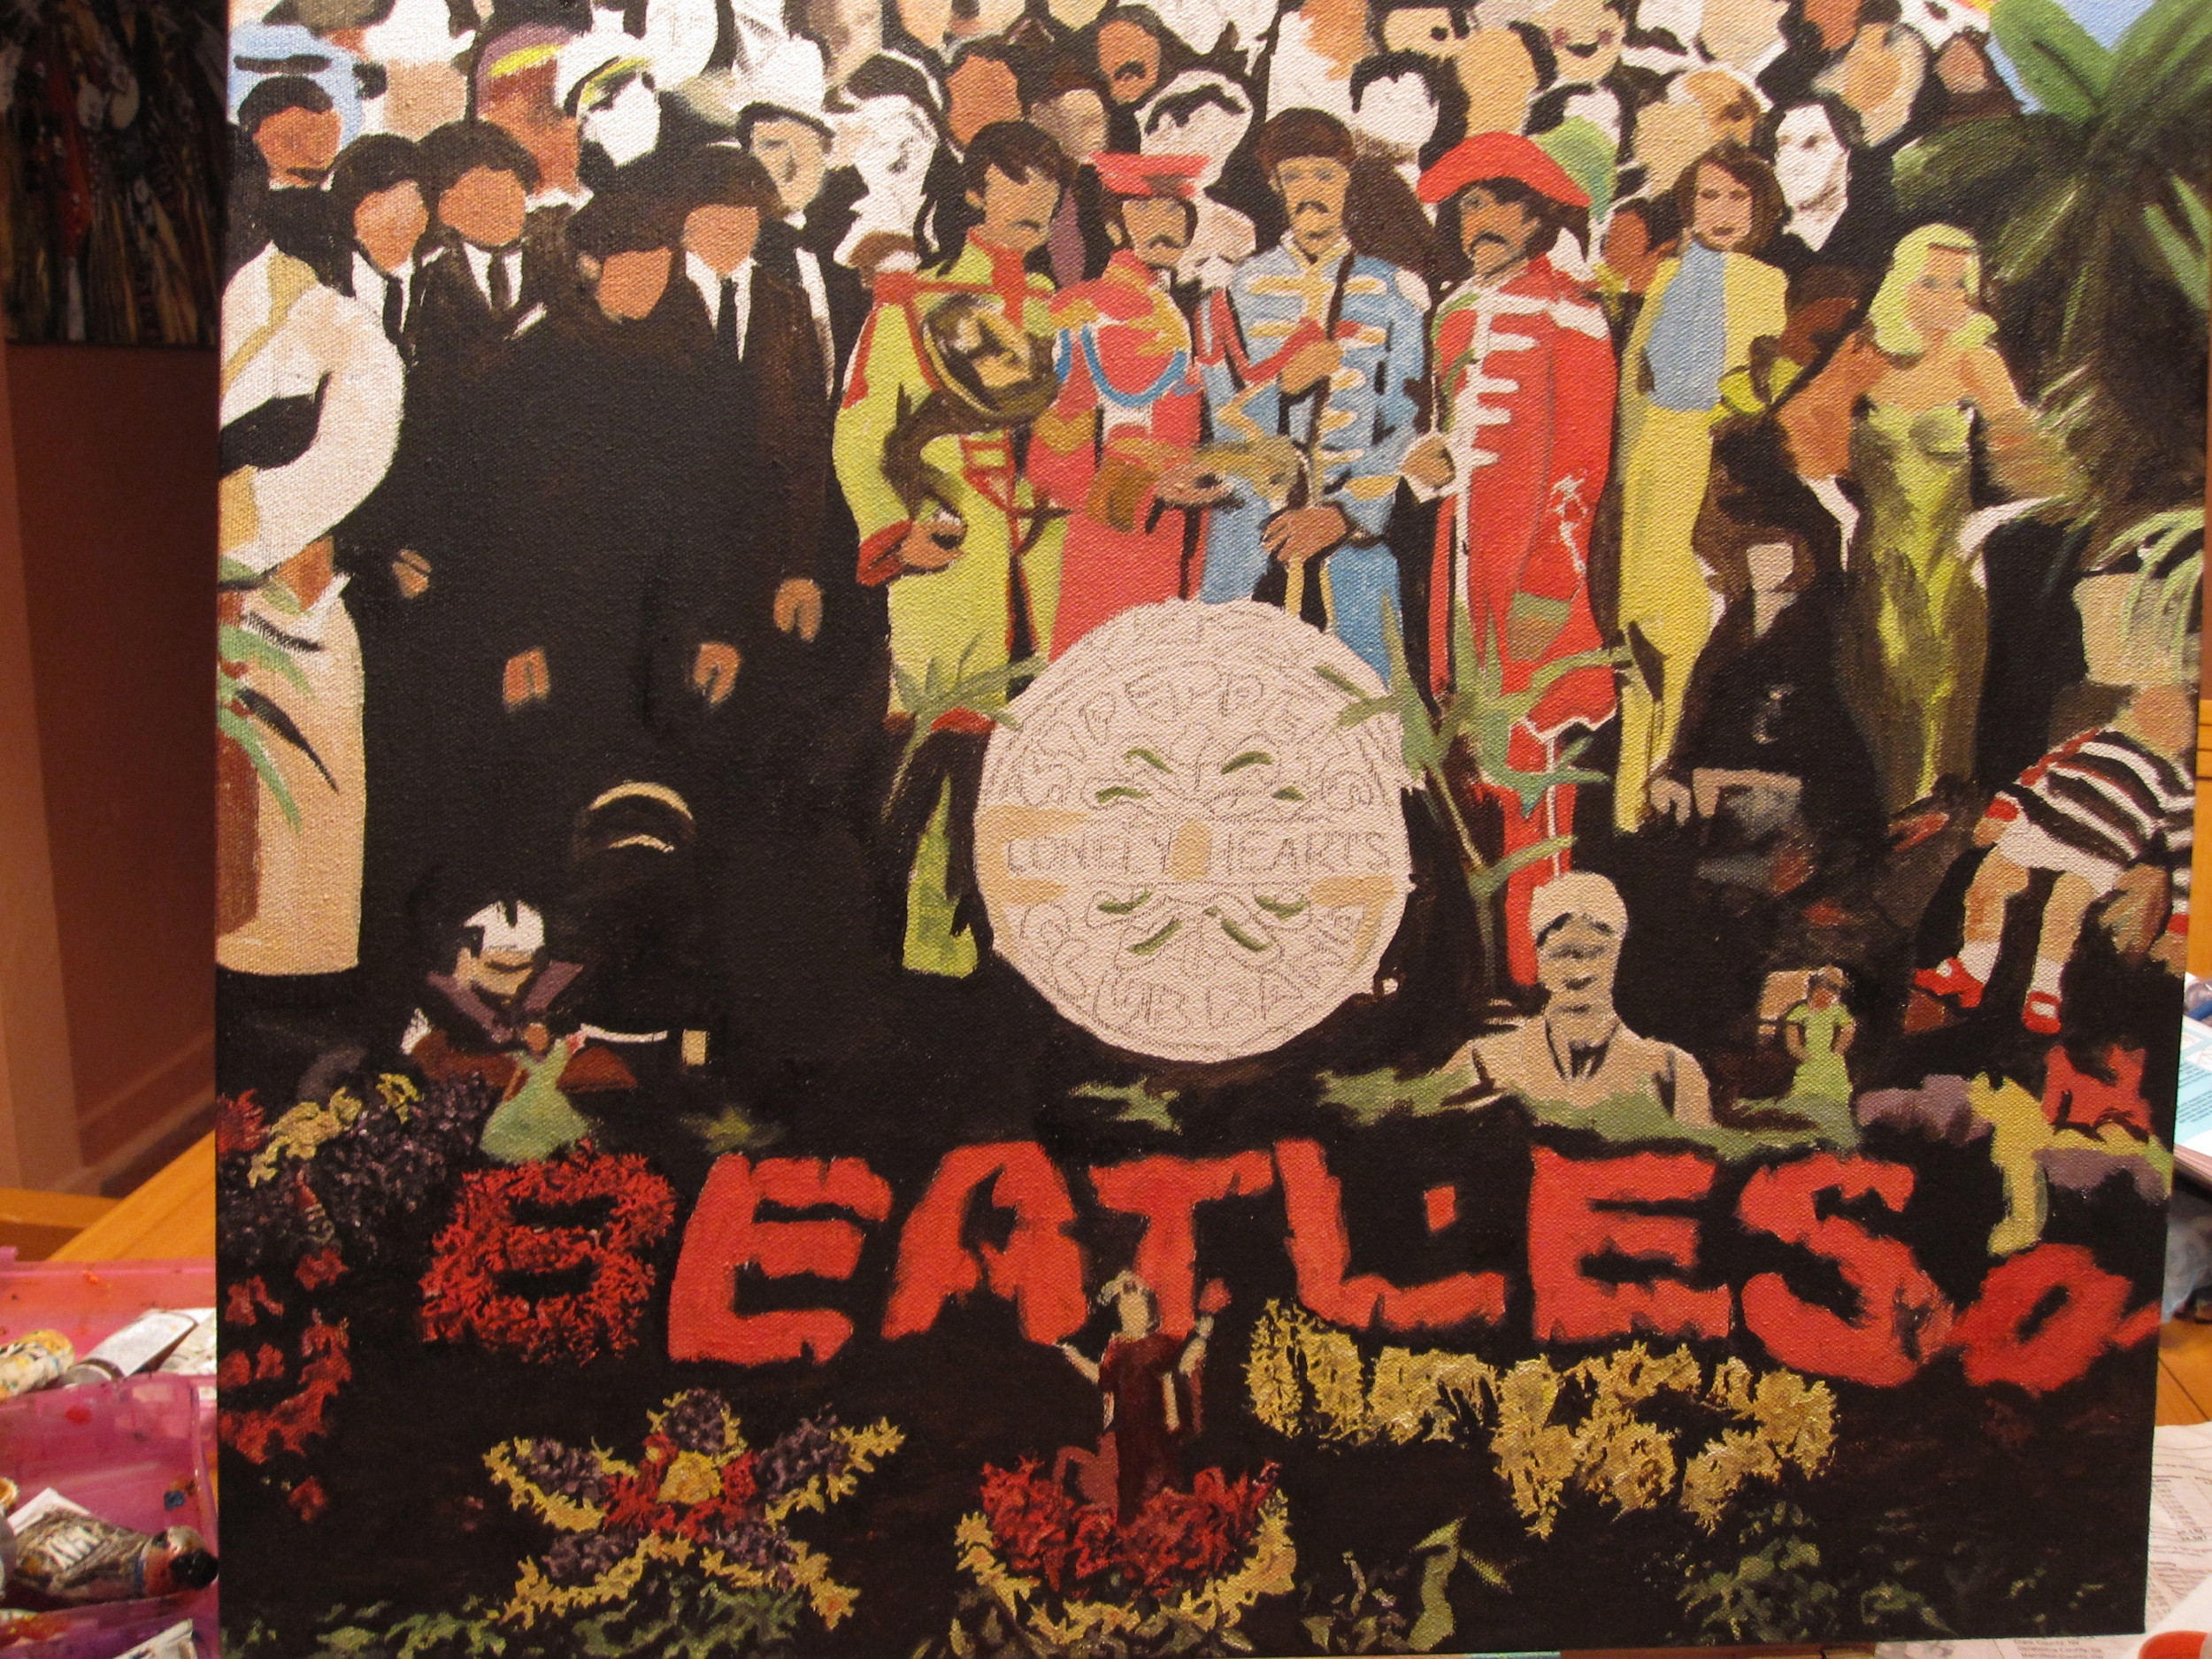 Continuing to add detail to Sgt. Peppers.